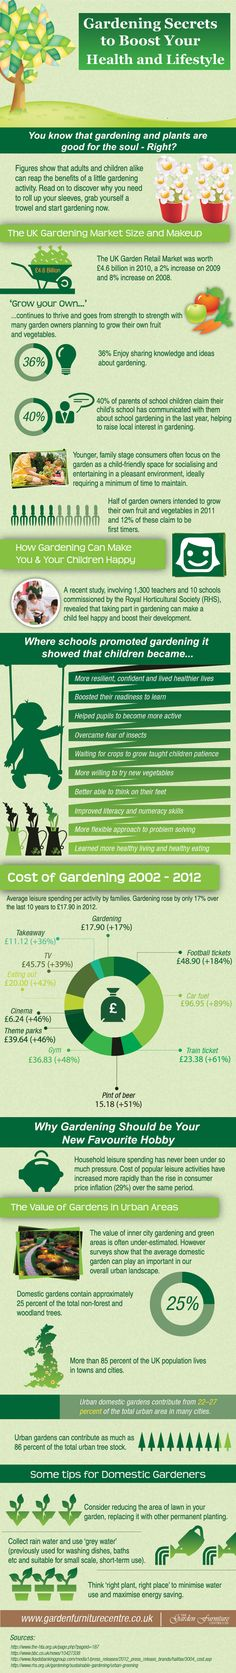 Gardening Secrets To Boost Your Health Infographic #Gardening #Health_Benefits #Infographic